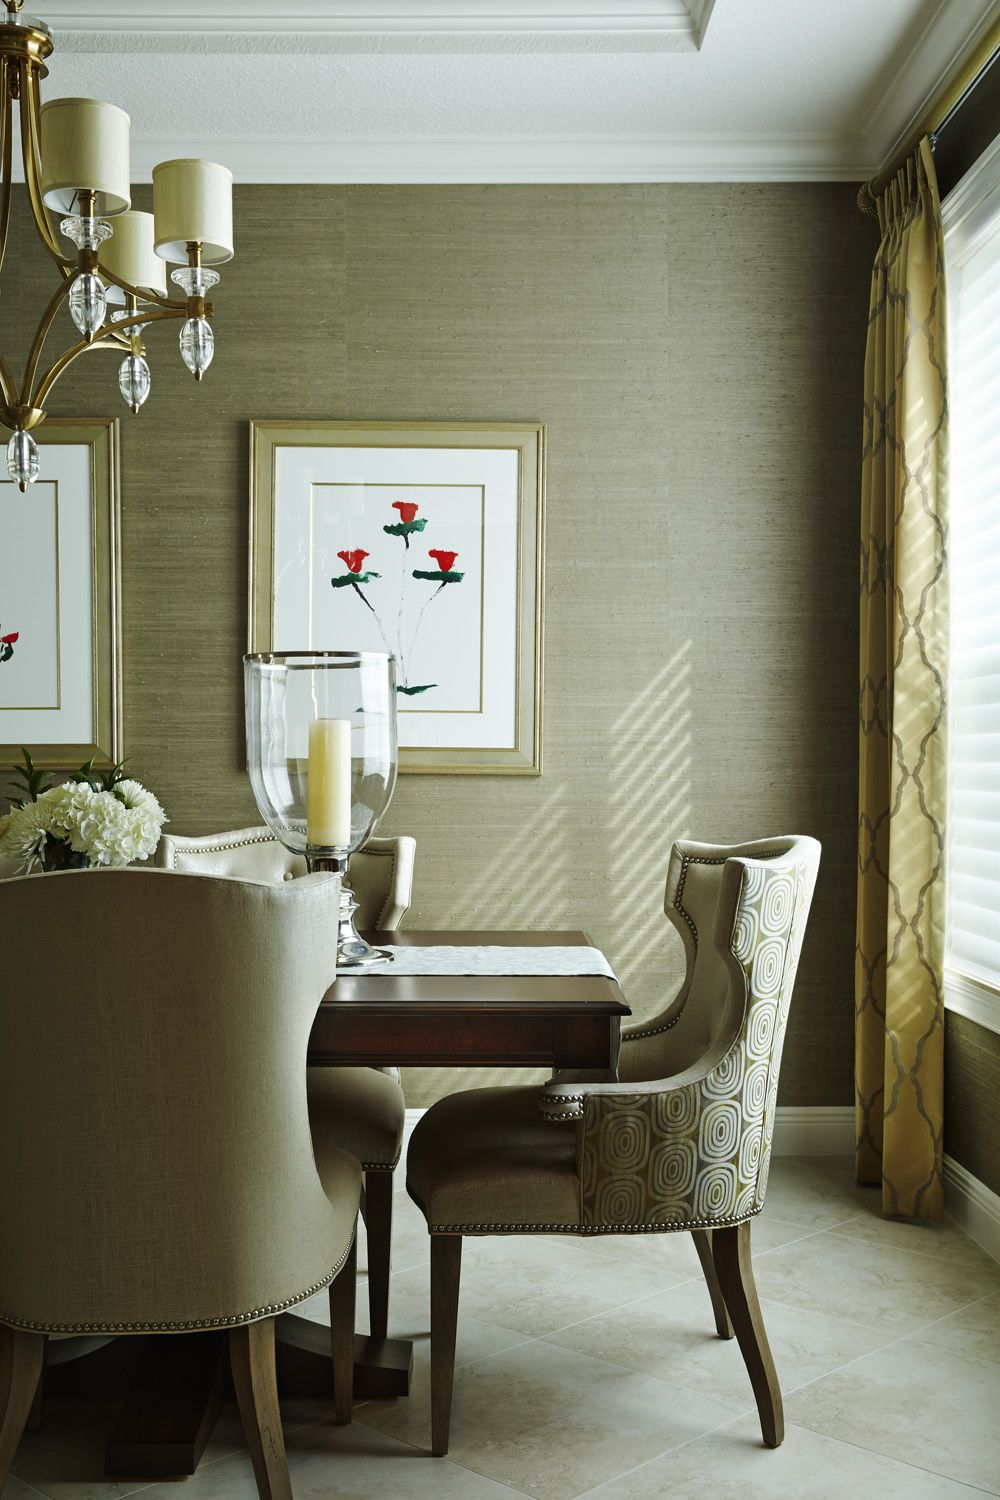 Dining Room Kravet Fabric Was Used On The Chairs And Drapery Grasscloth Wallpaper West Palm Beach FloridaHunter